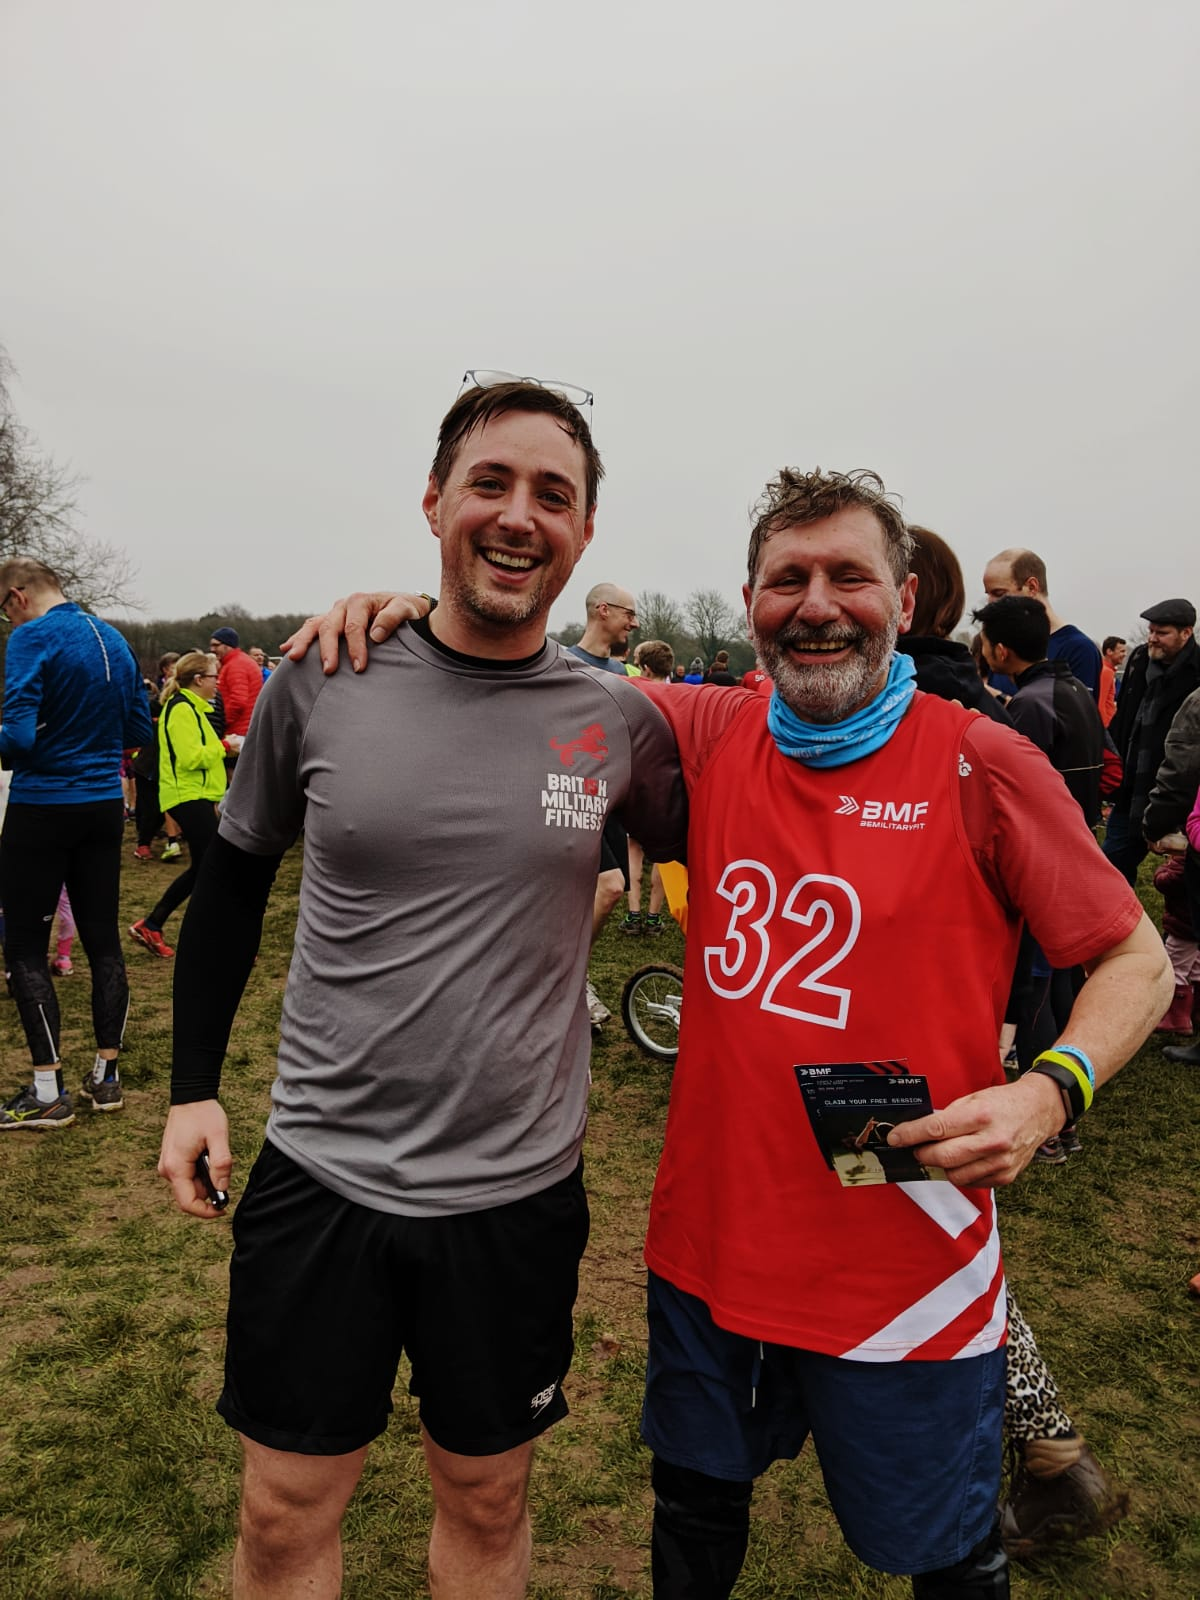 BMF Member completes 200th park run before COVID-19